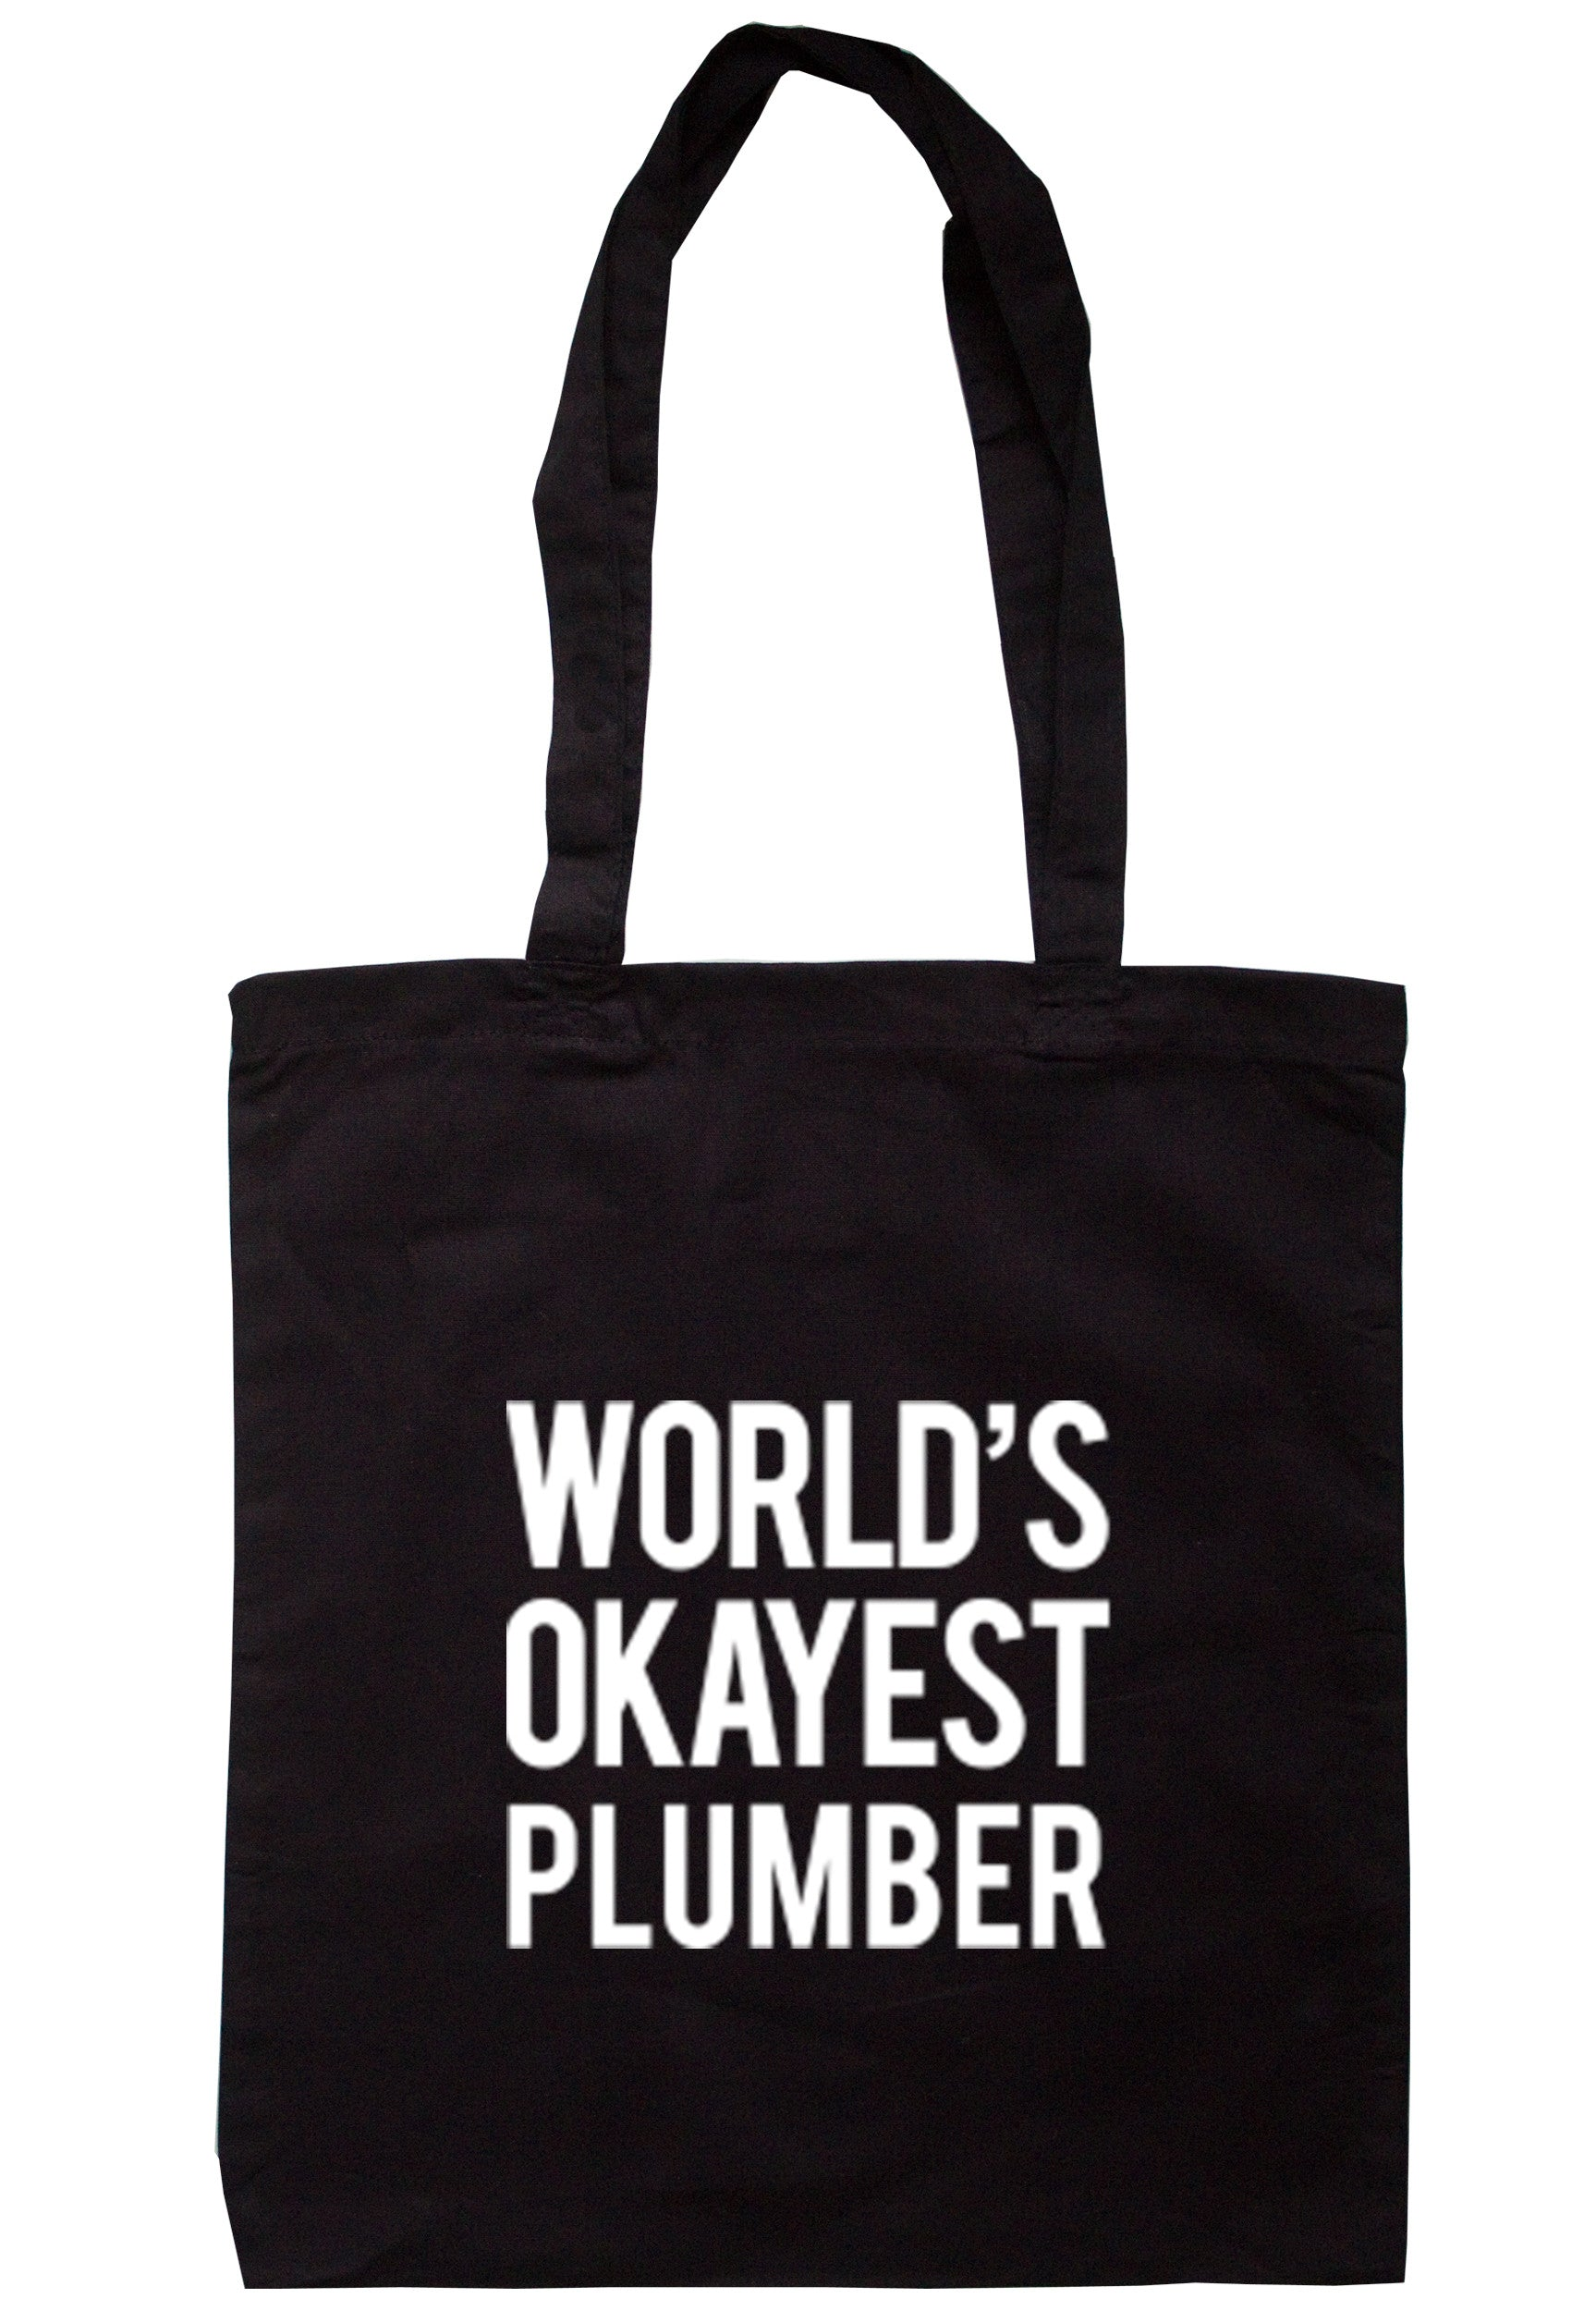 Worlds Okayest Plumber Tote Bag TB0303 - Illustrated Identity Ltd.